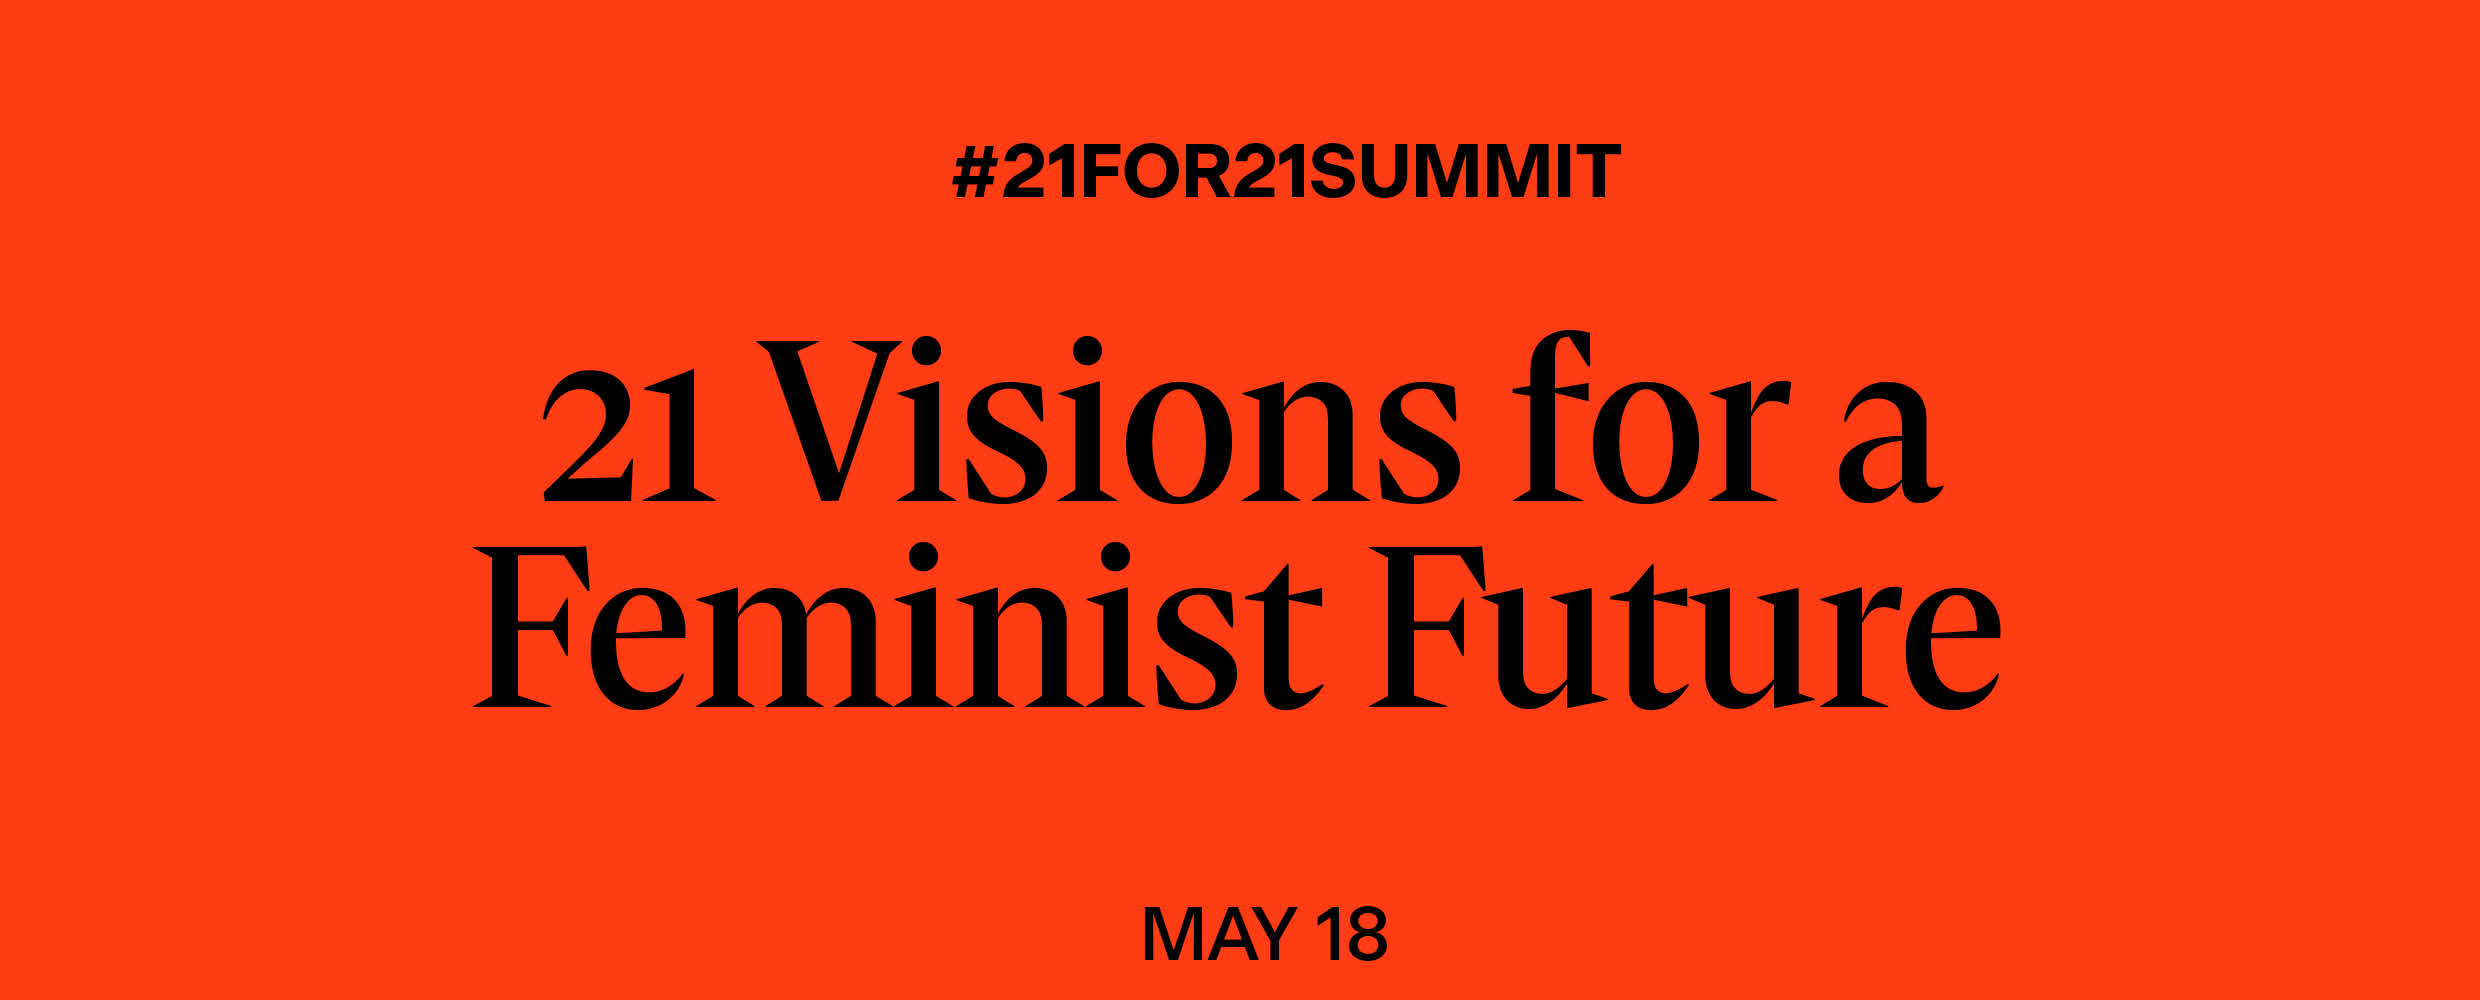 Visions of a Feminist Future #21For21Summit